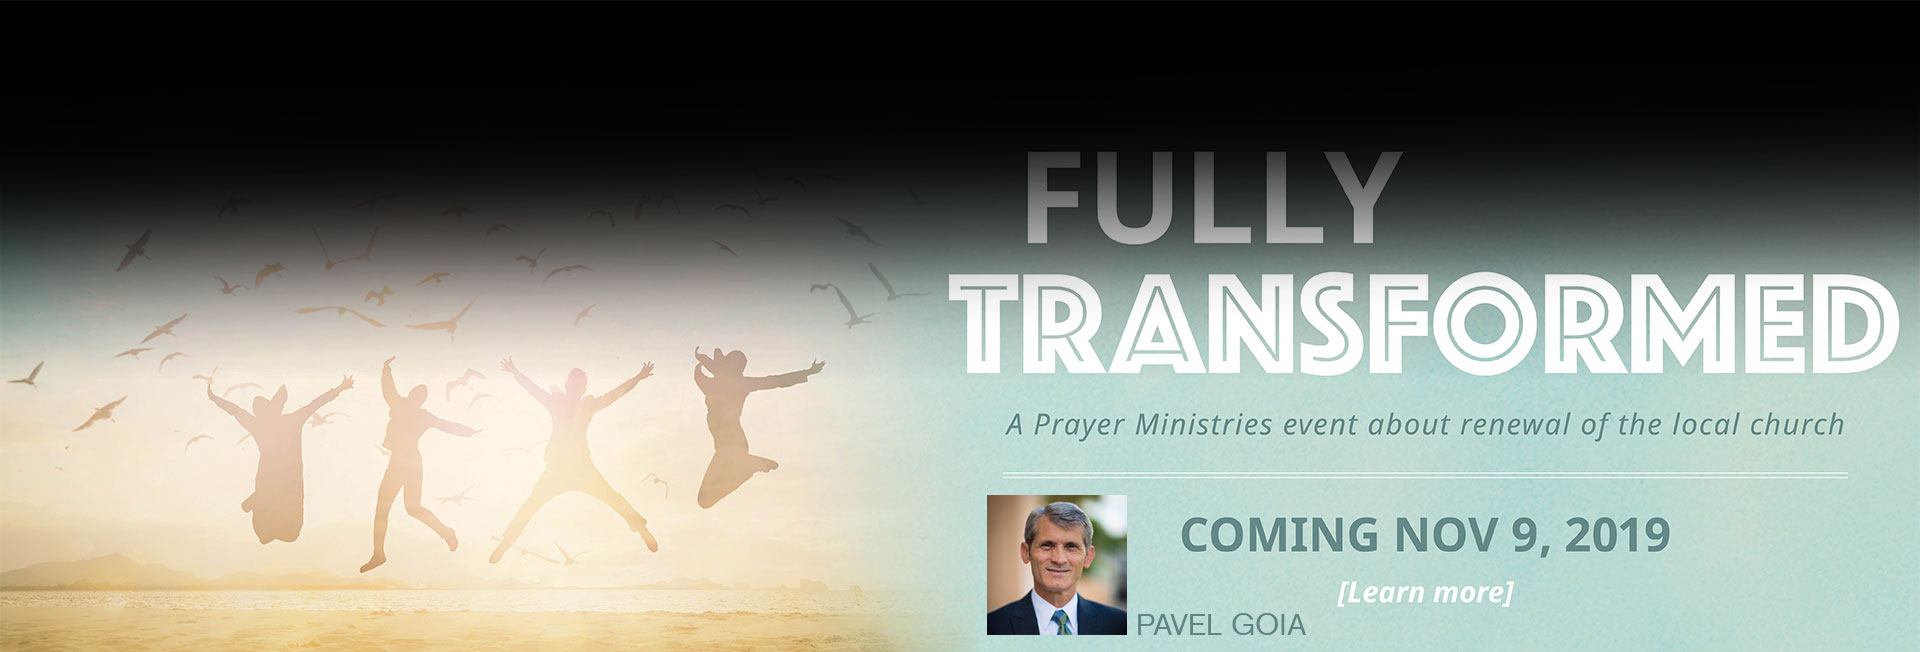 Fully Transformed -- A Prayer Ministries event about renewal November 9